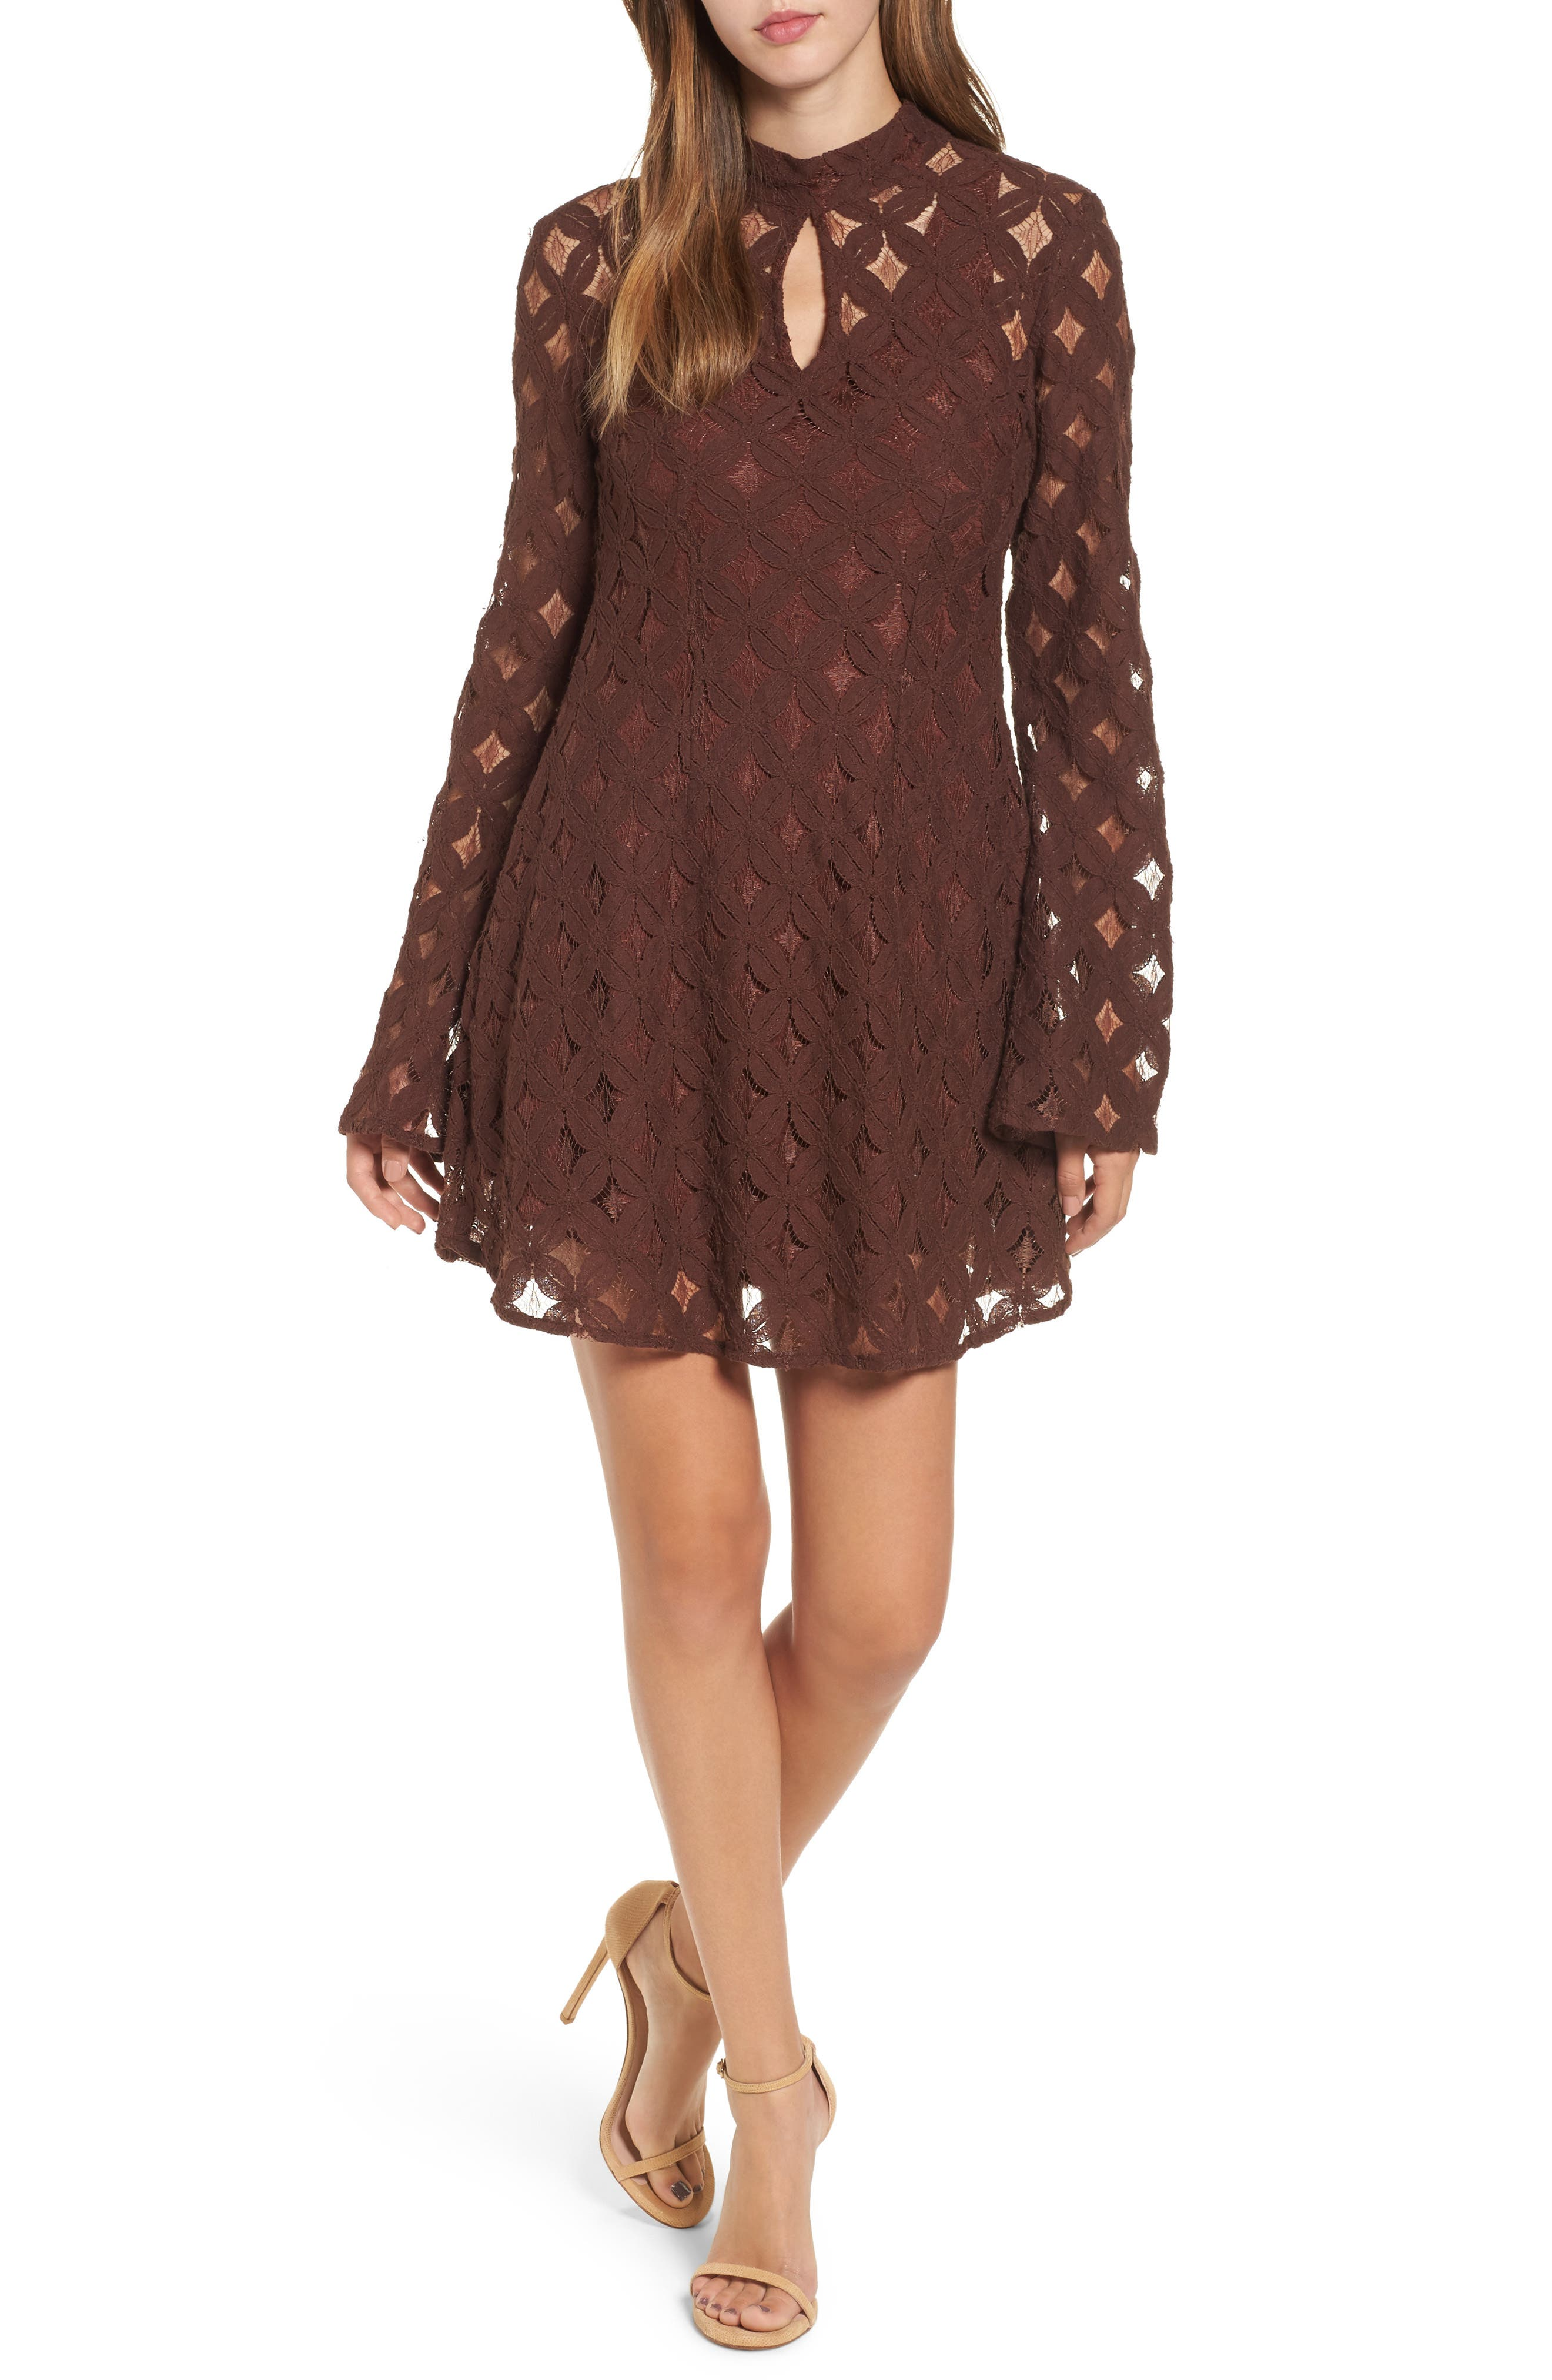 Main Image - Somedays Lovin Crimson Hearts Lace Dress